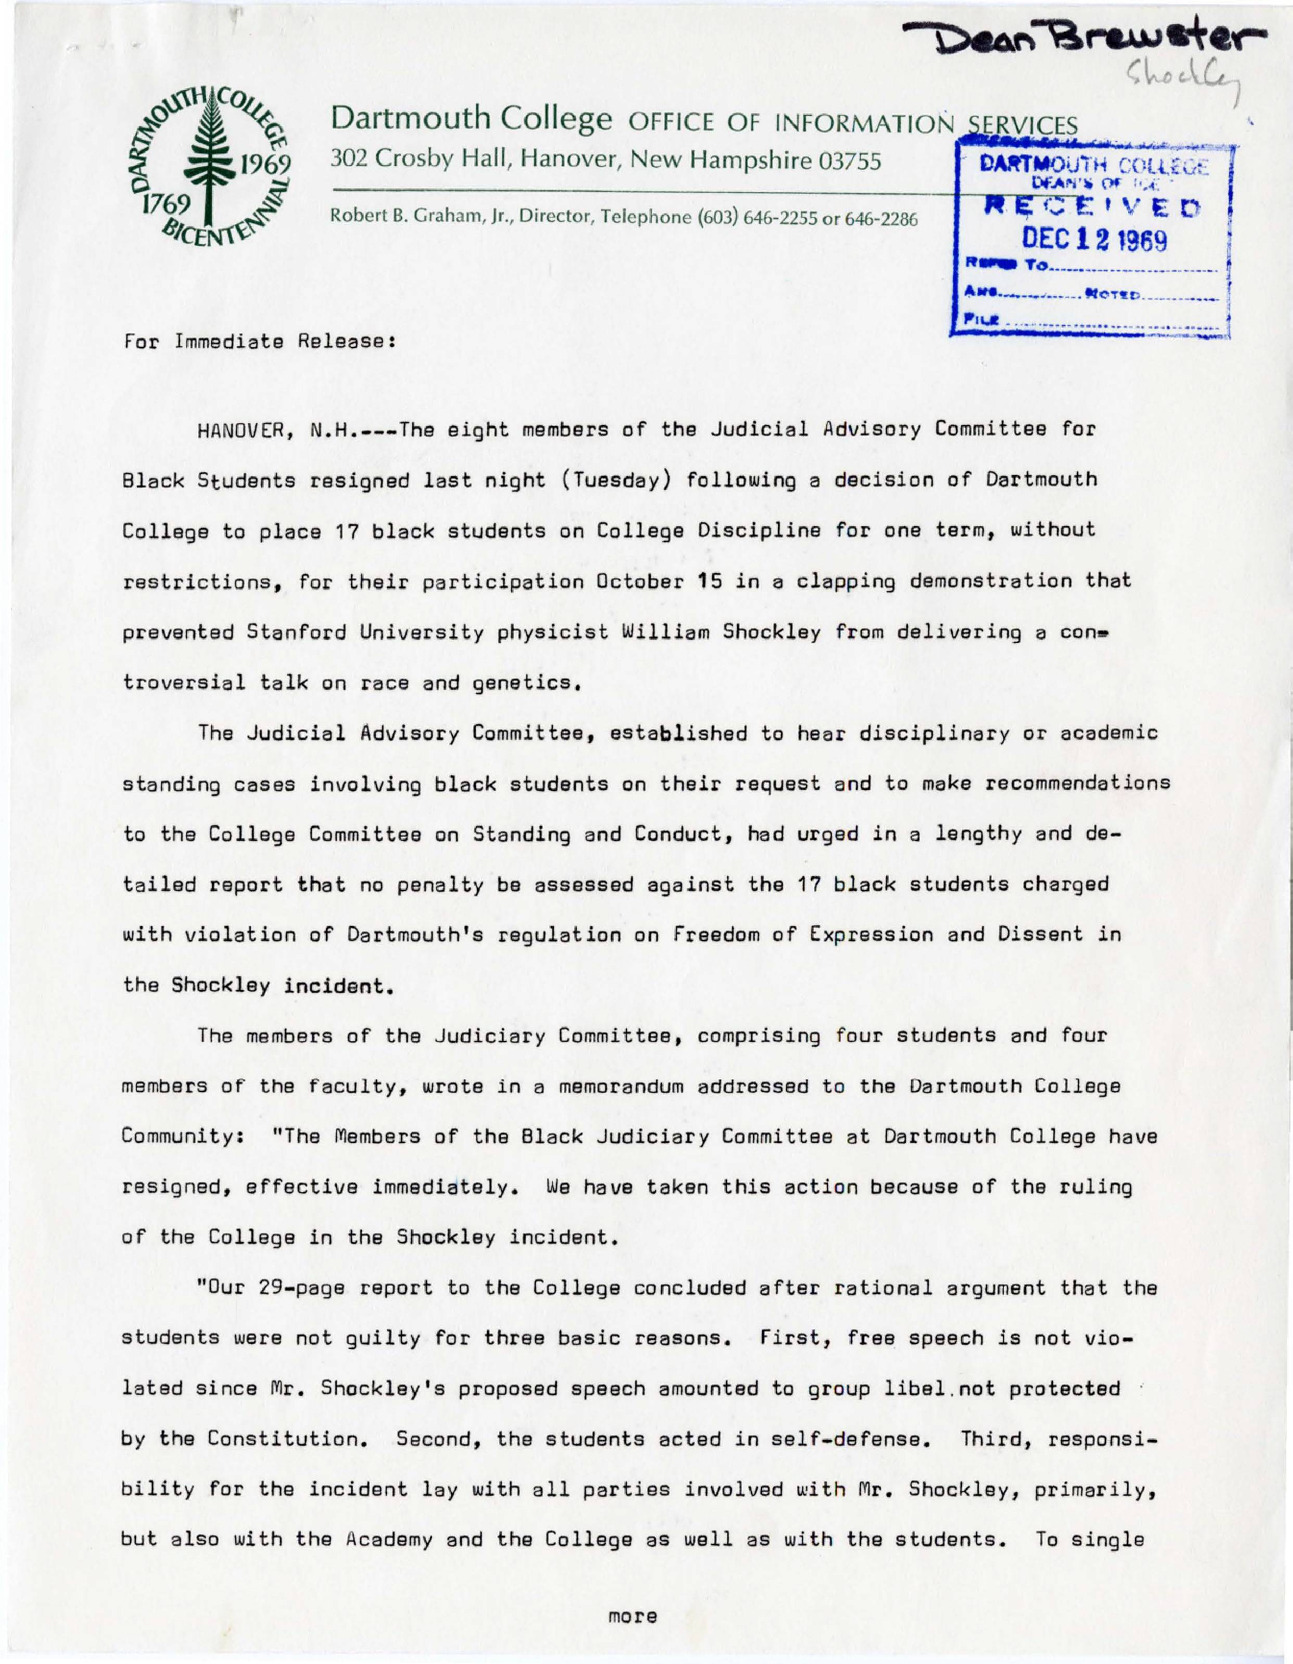 """This press release announces the resignation of the four students and four faculty members that served on Dartmouth's Judicial Advisory Committee (JAC) for Black Students following the decision of the College to place 17 black students on college discipline for their involvement in the clapping demonstration against William Shockley. The JAC statement recalls that their 29-page report concluded that the students should not be charged with any offenses on the grounds that Shockley's speech amounted to group libel, the students therefore acted in self-defense. The JAC statement further explains that their decision to dissolve was made in part due to the College's failure to answer any of the arguments put forth by the committee regarding the Shockley incident, therefore demonstrating that """"further activities of the Black Judiciary Committee [are] futile"""" in conversations about race relations at Dartmouth."""